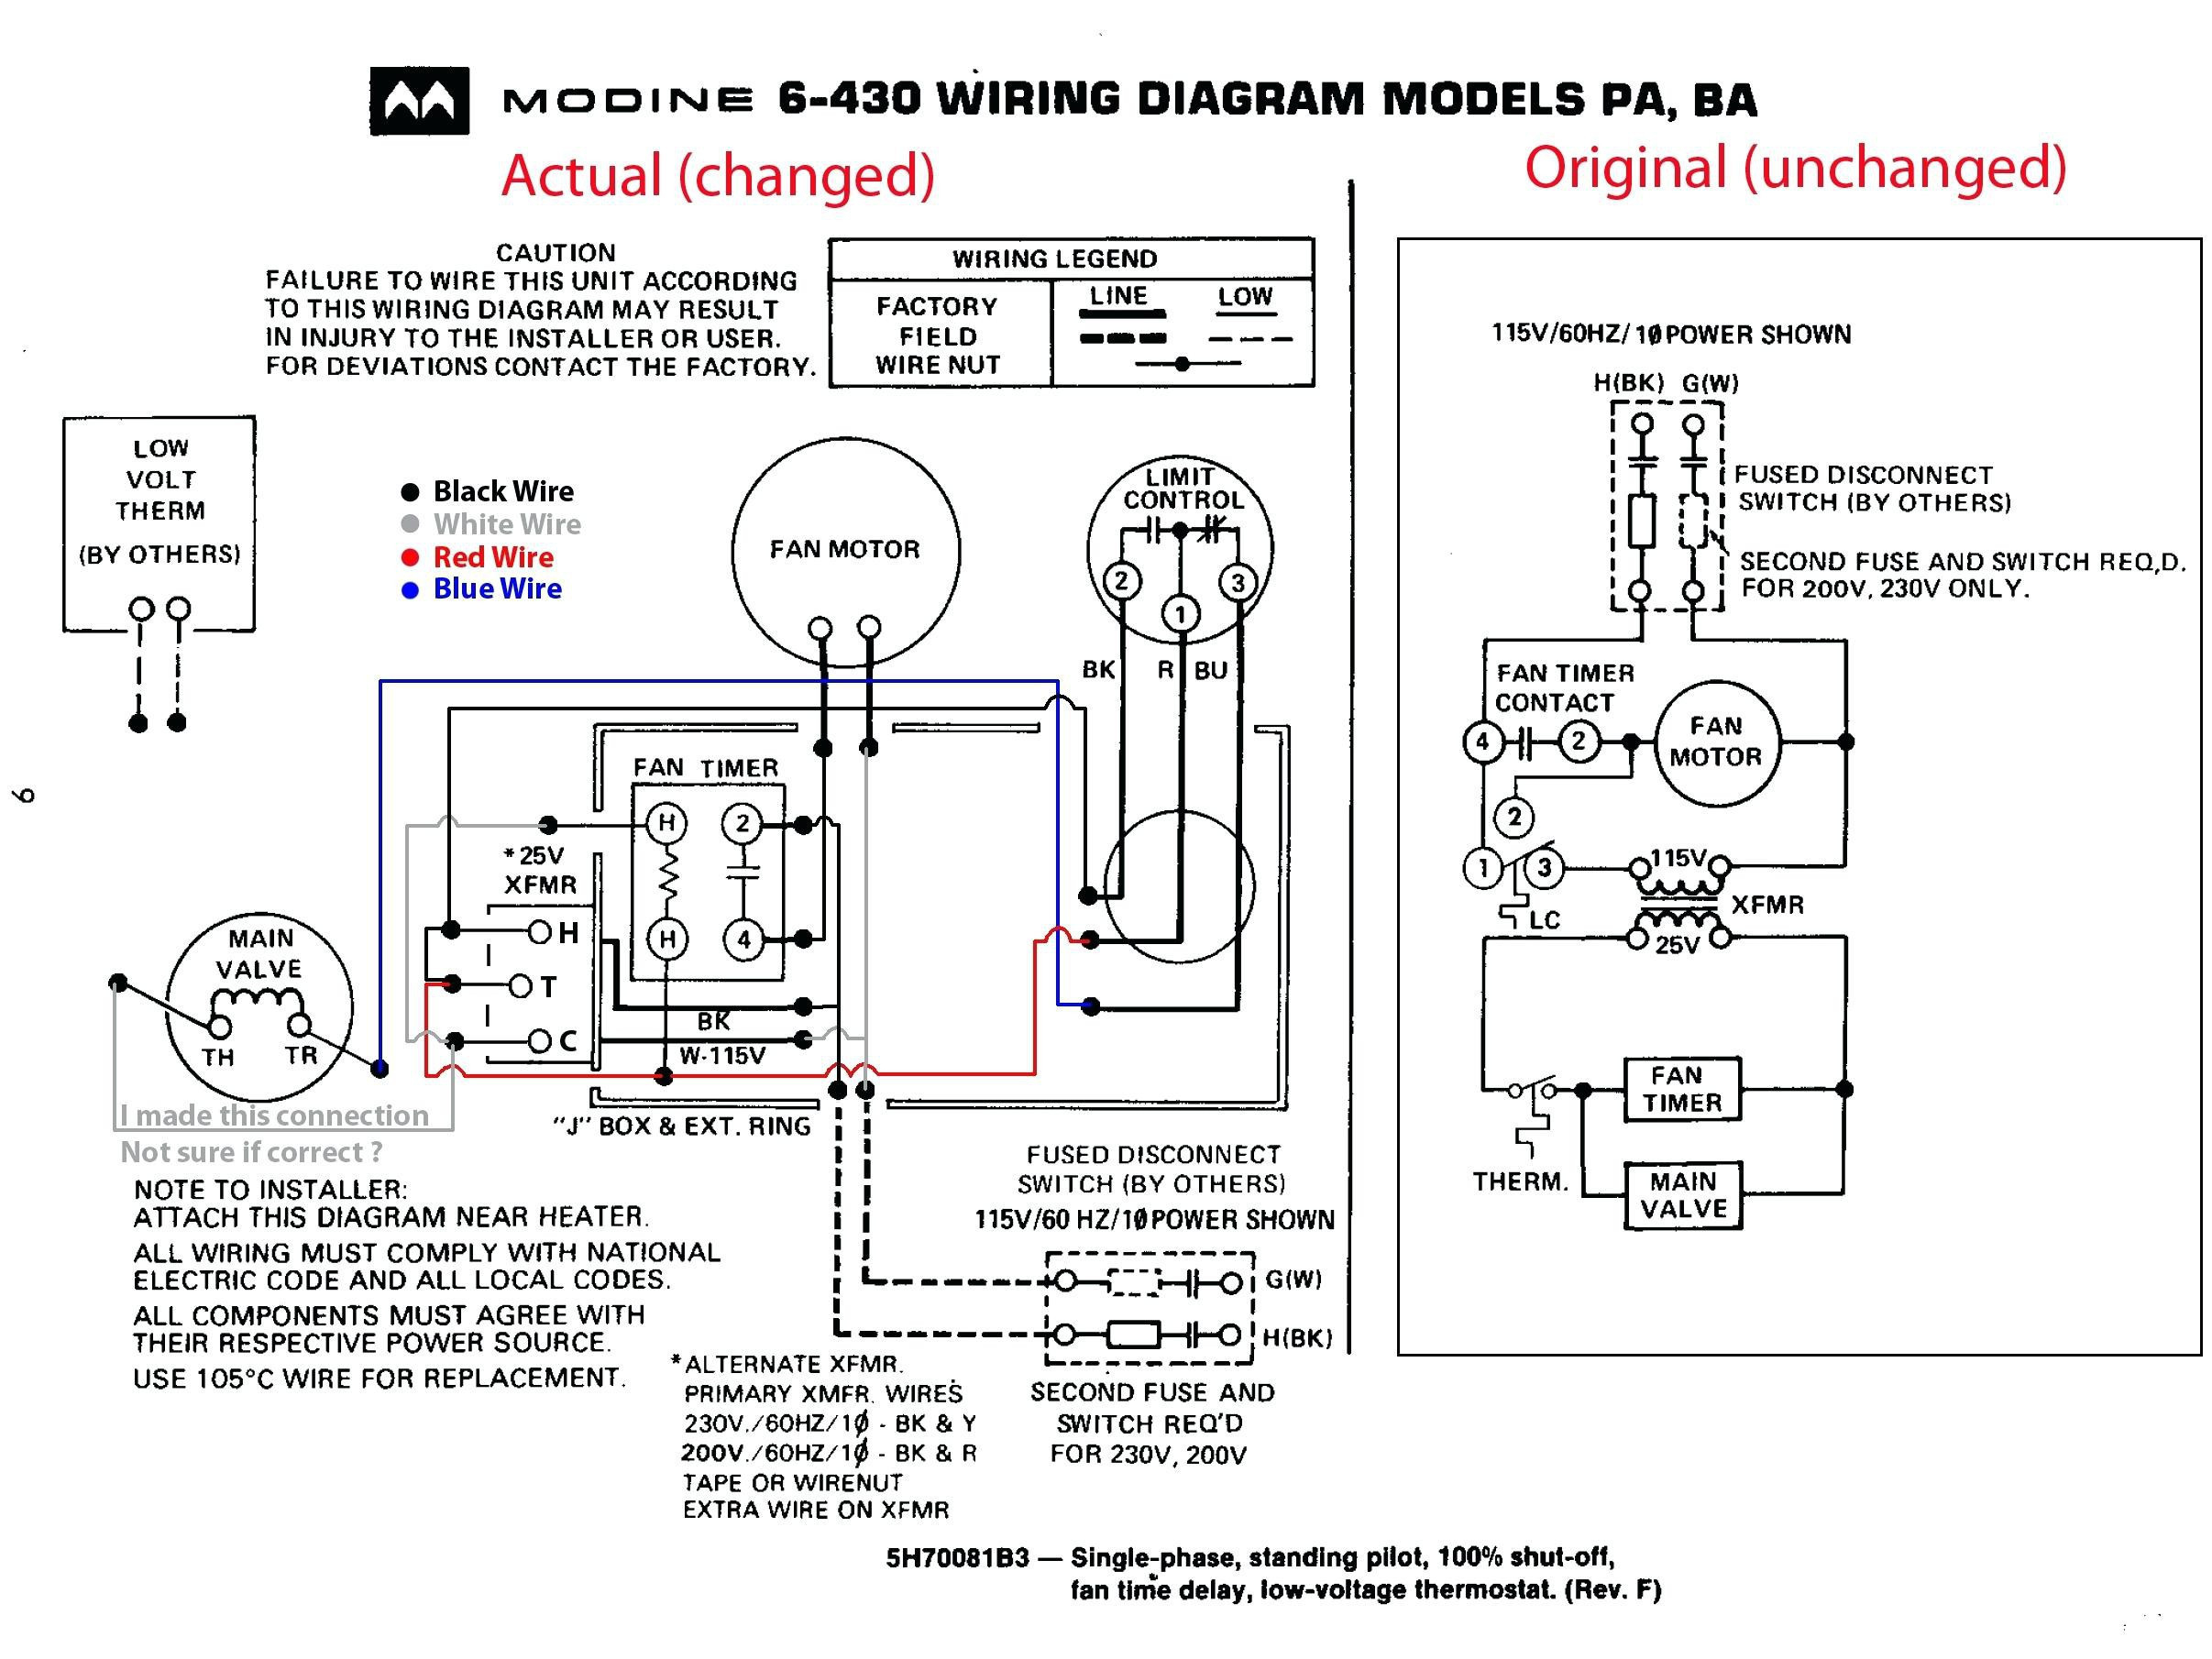 Hvac Blower Relay Wiring - custom project wiring diagram on